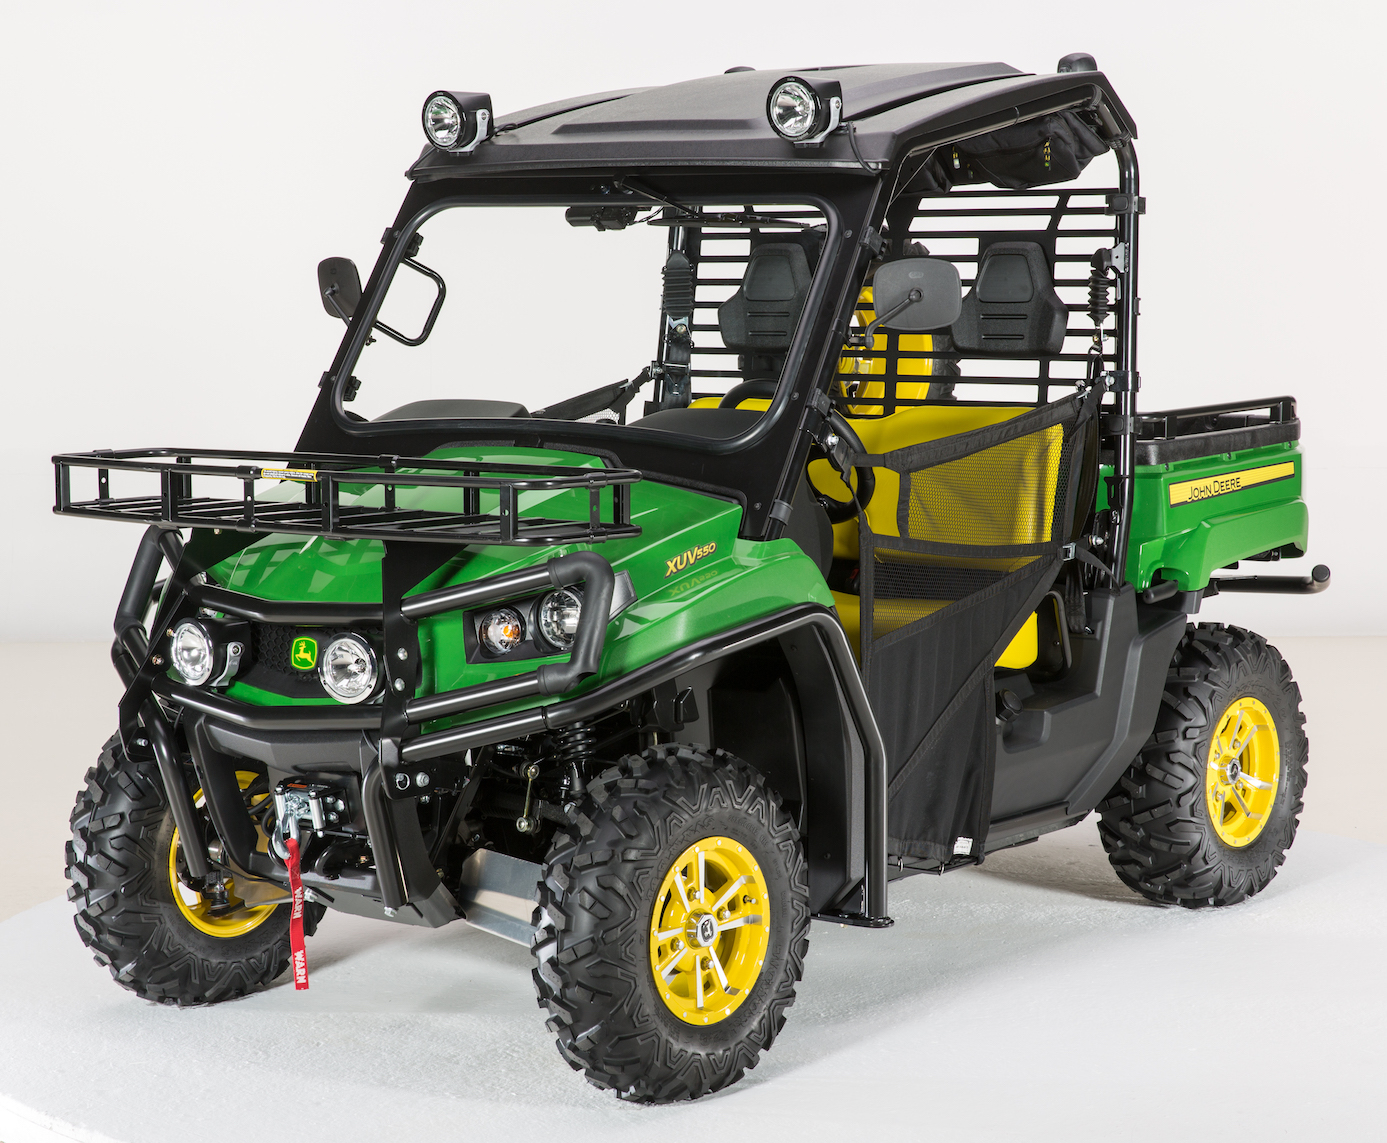 john deere cargo bed extender for full size xuv gator. Black Bedroom Furniture Sets. Home Design Ideas